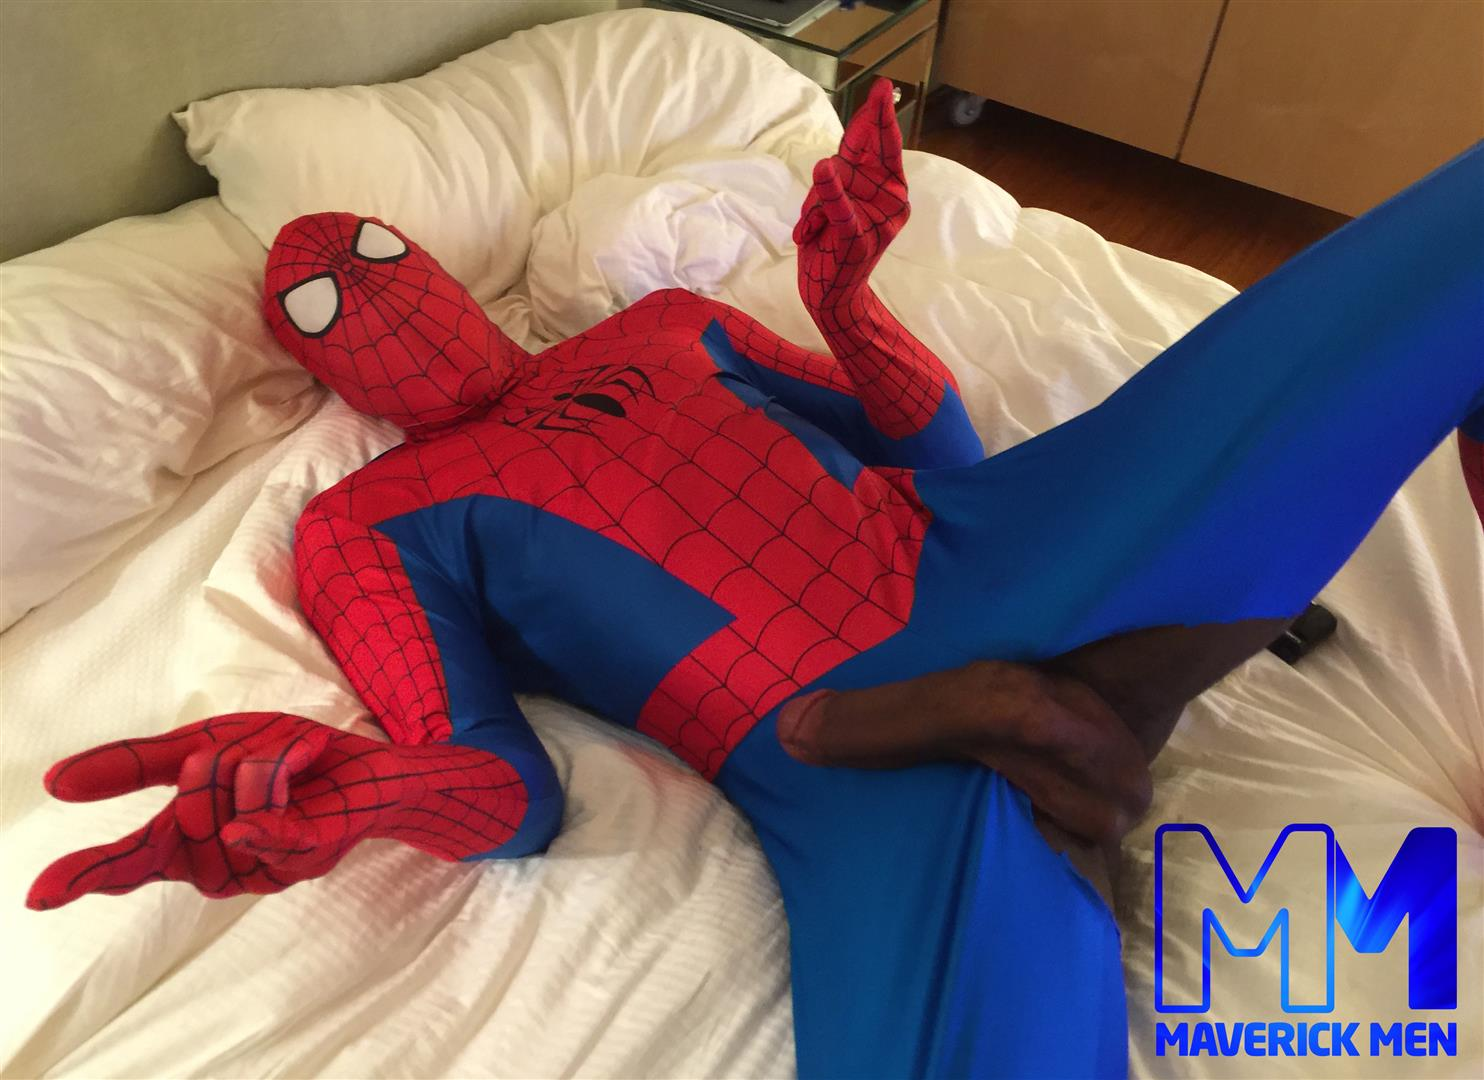 Maverick-Men-Spiderman-With-A-Big-Black-Dick-Bareback-Threesome-Amateur-Gay-Porn-01 Happy Halloween... Did You Know That Spiderman Has A Big Black Dick?